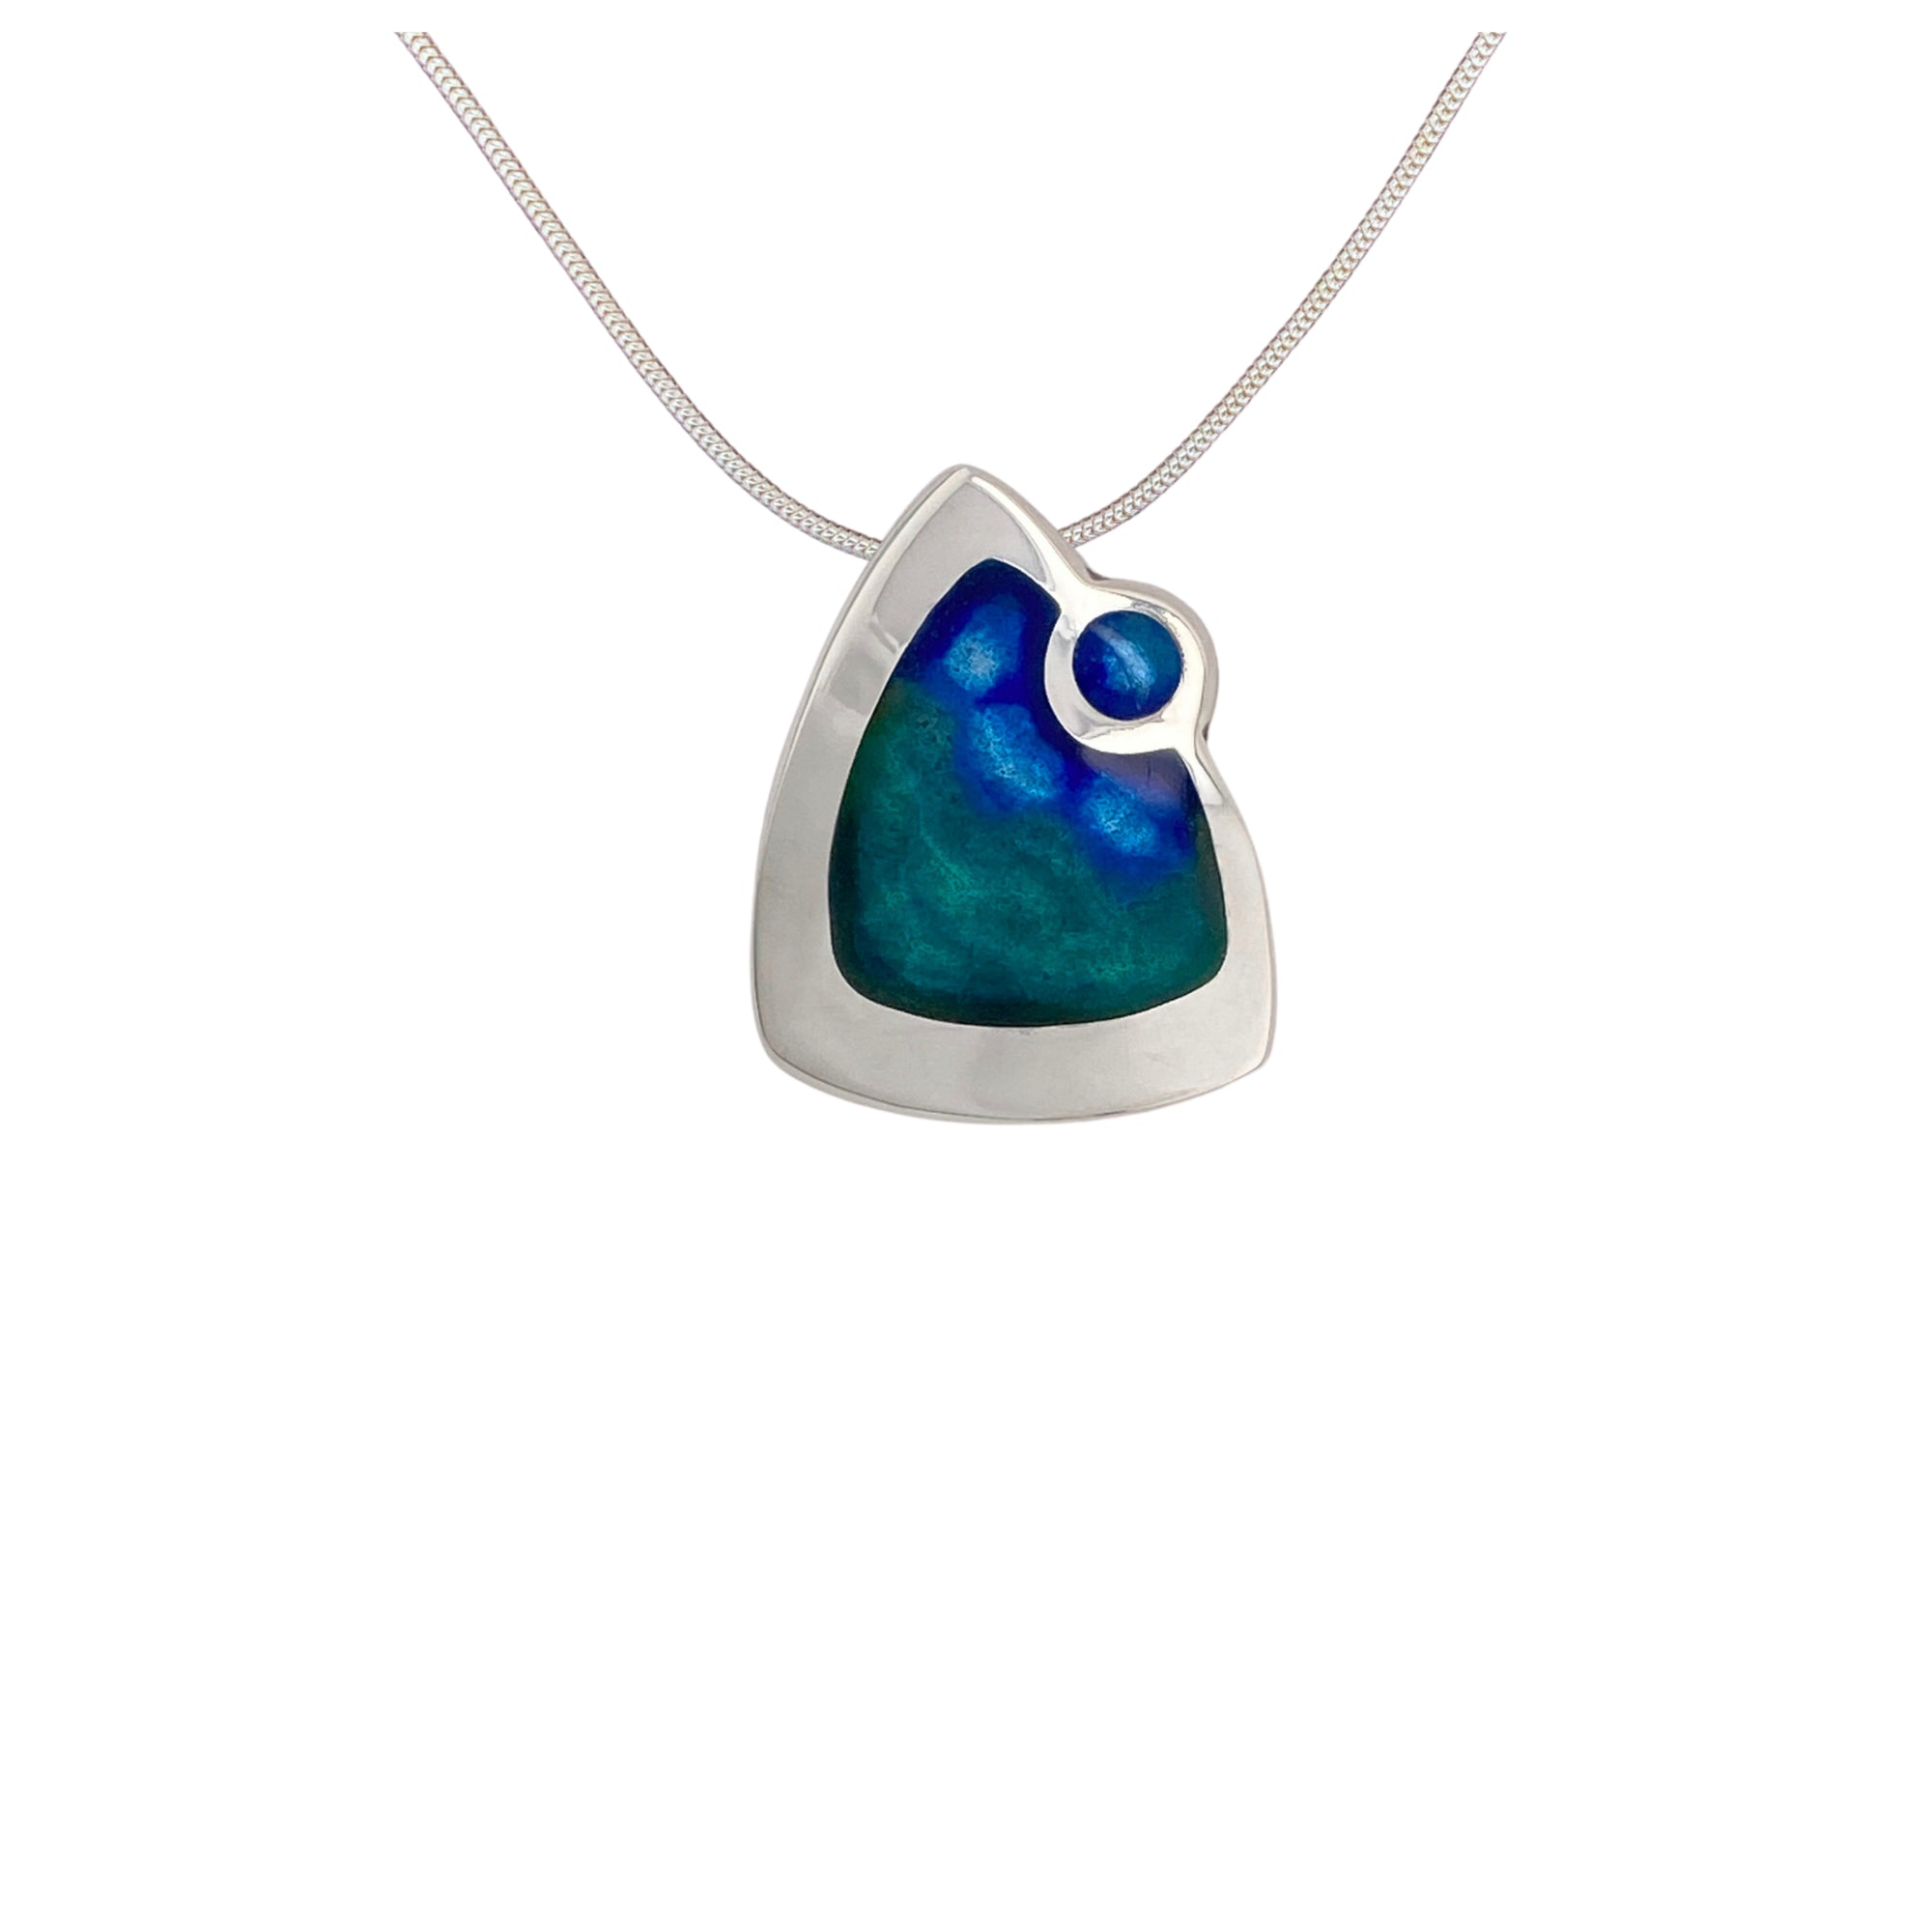 Camille Patton Blue Moon Champleve Jewelry Necklace S01